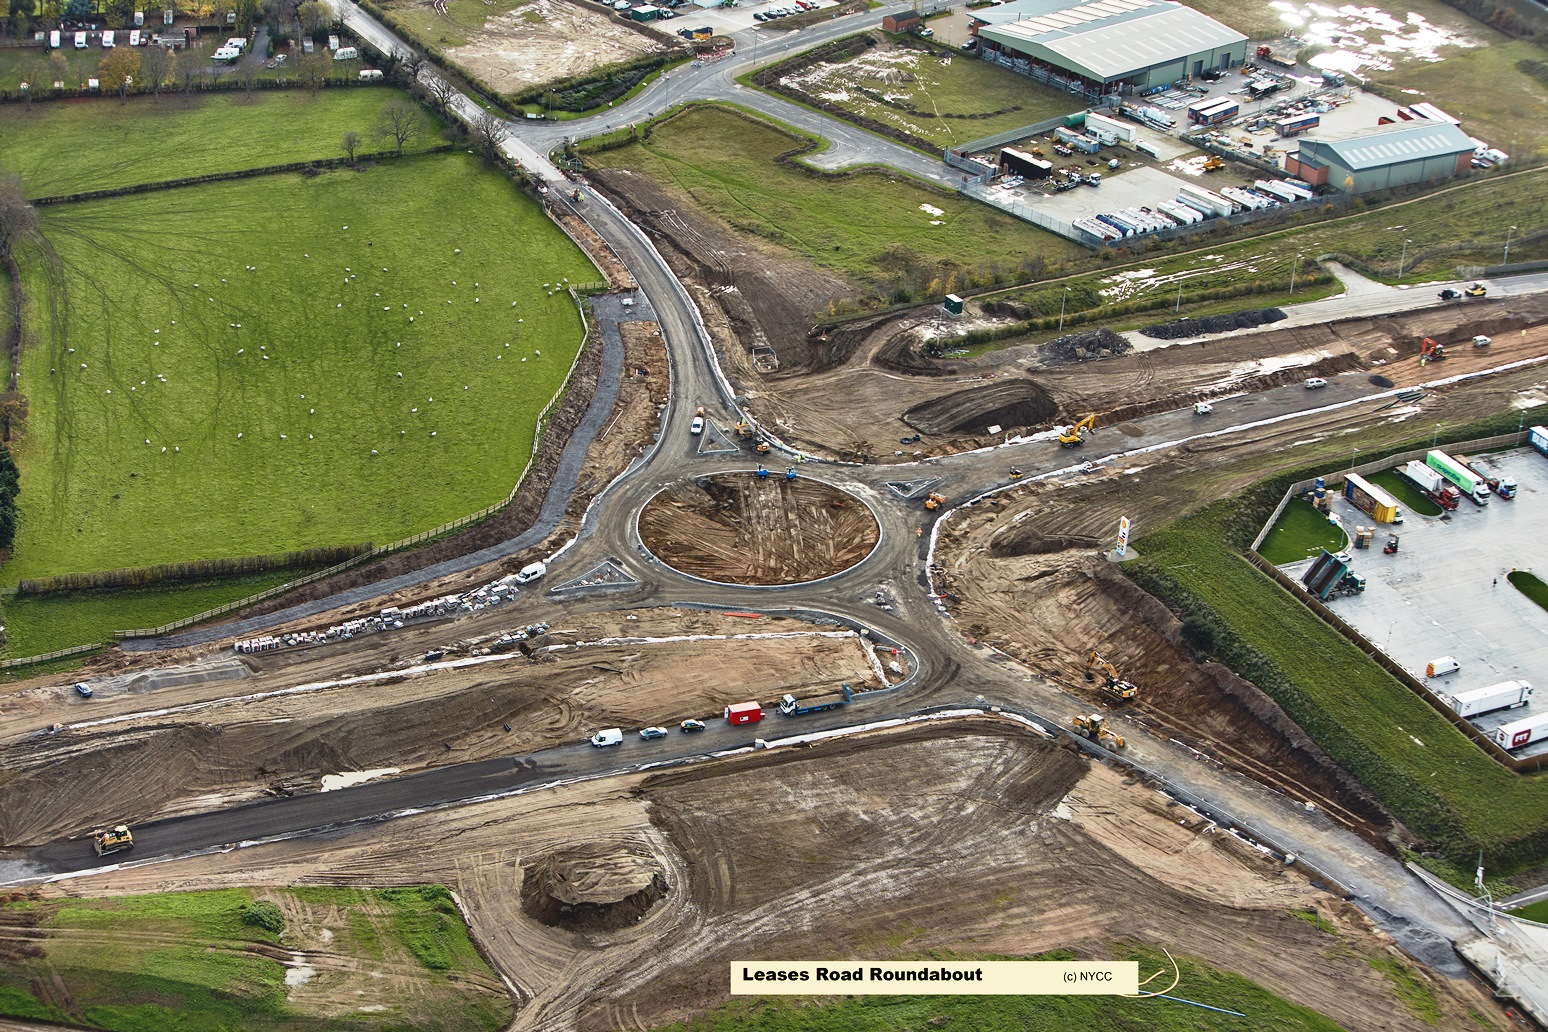 Leases Road Roundabout